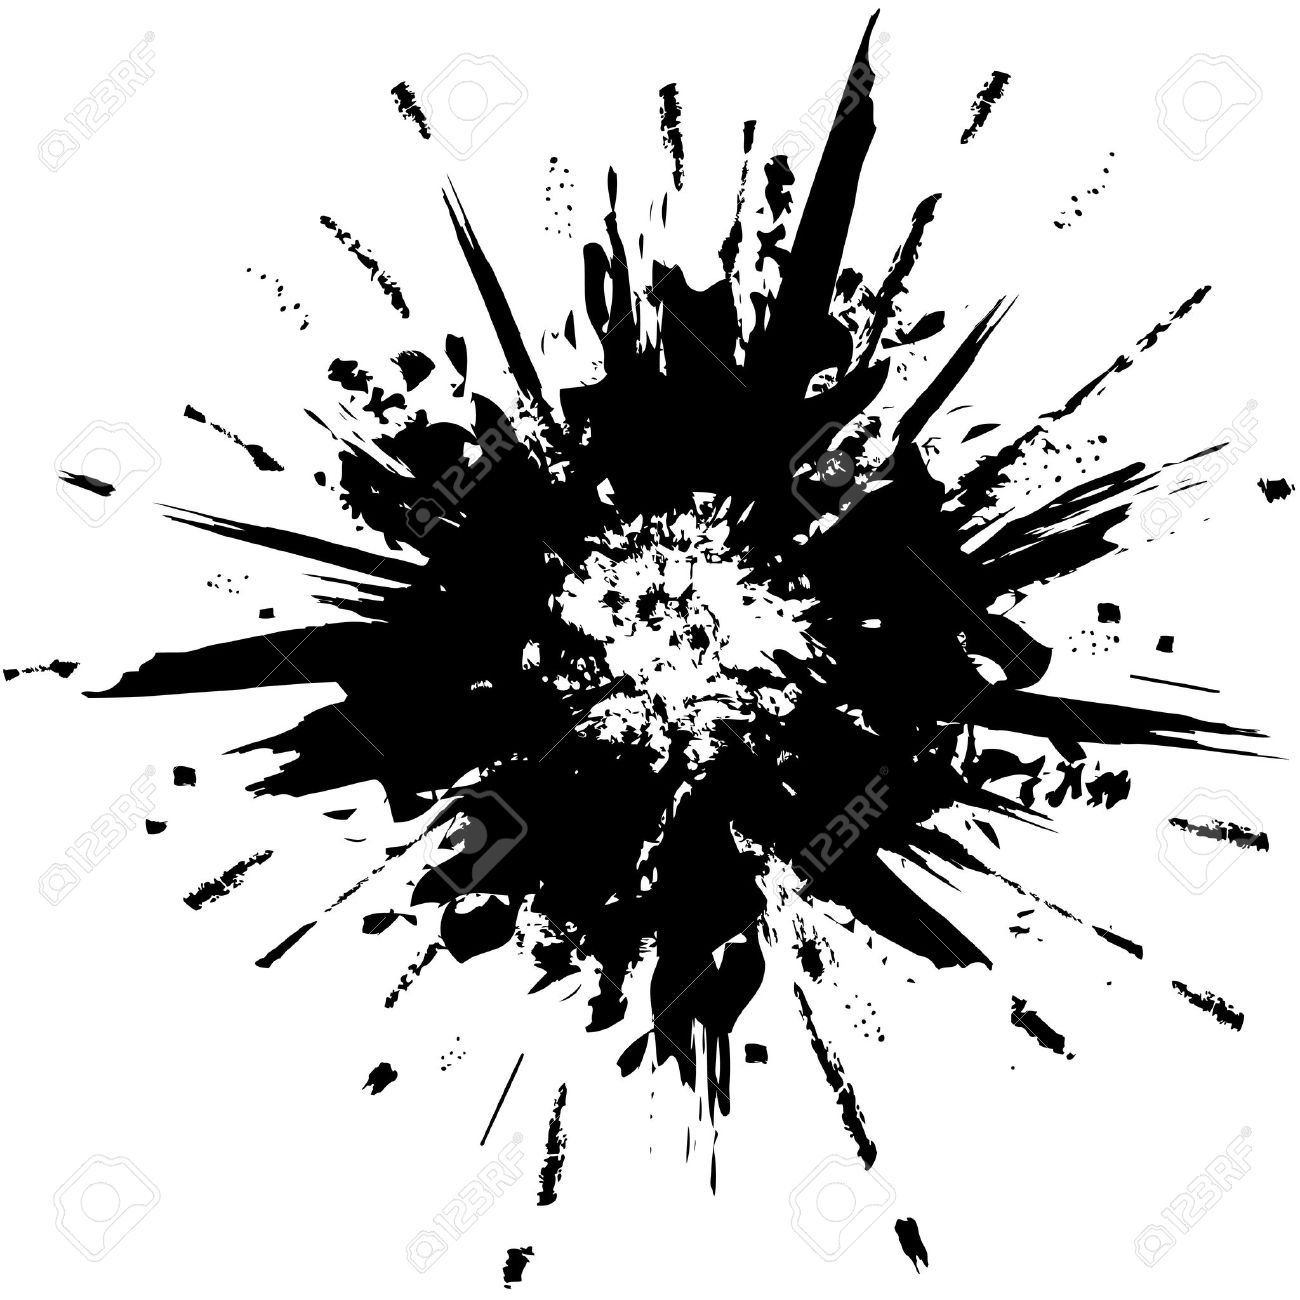 explosion royalty free cliparts vectors and stock illustration rh 123rf com vector explosion free vector explosion after effects